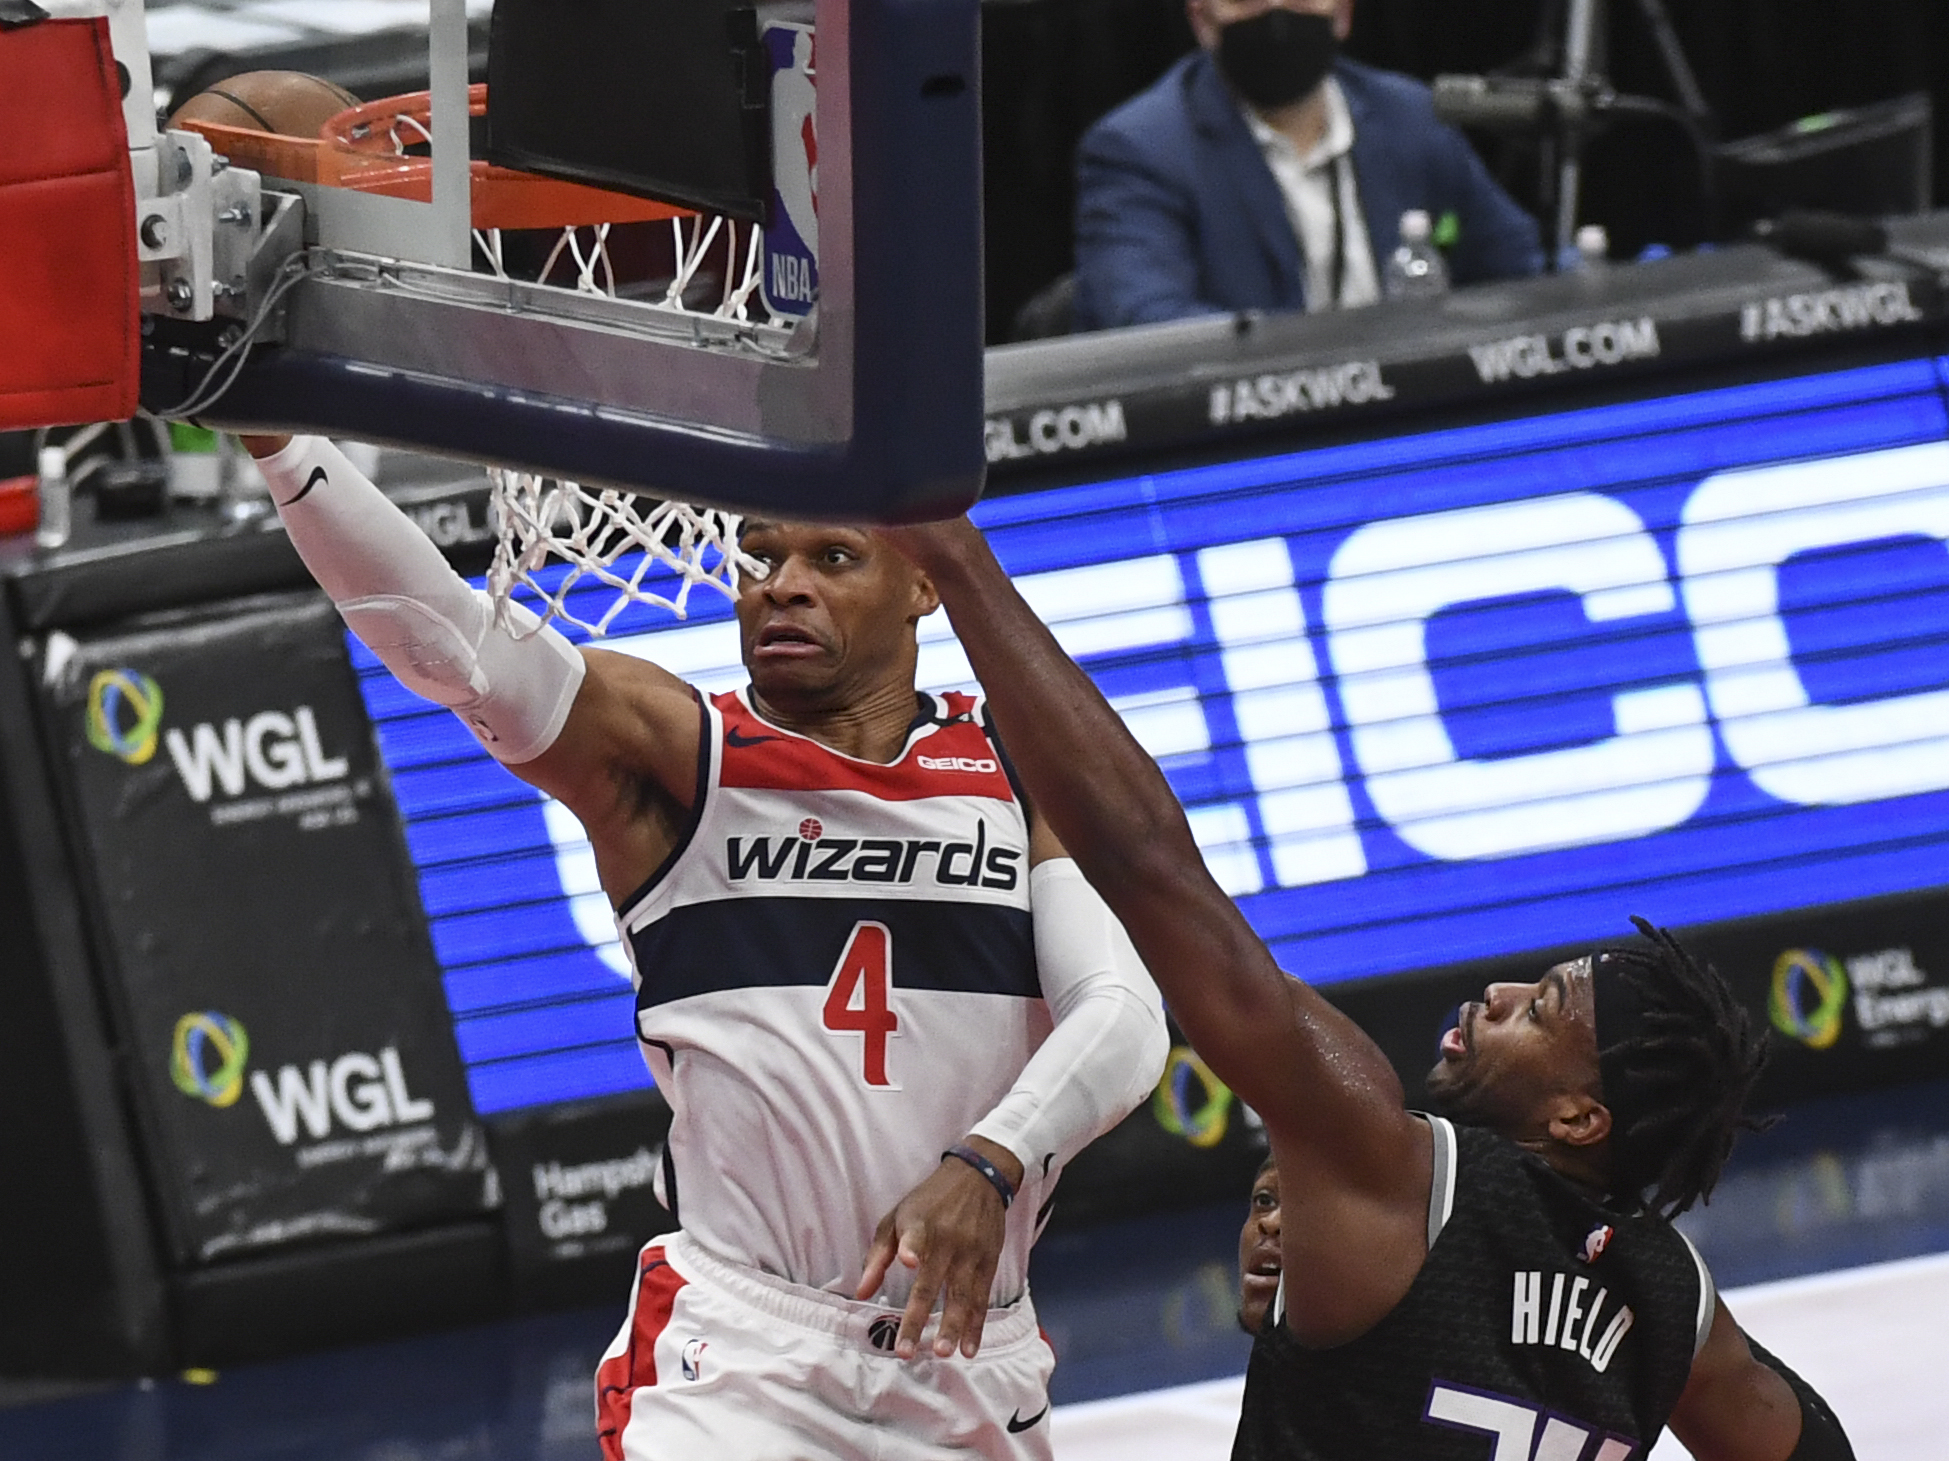 Washington Wizards guard Russell Westbrook (4) beasts Sacramento Kings guard Buddy Hield (24) as he goes up for two during the first quarter of the game between the Washington Wizards and the Sacramento Kings on Wednesday, March 16, 2021.